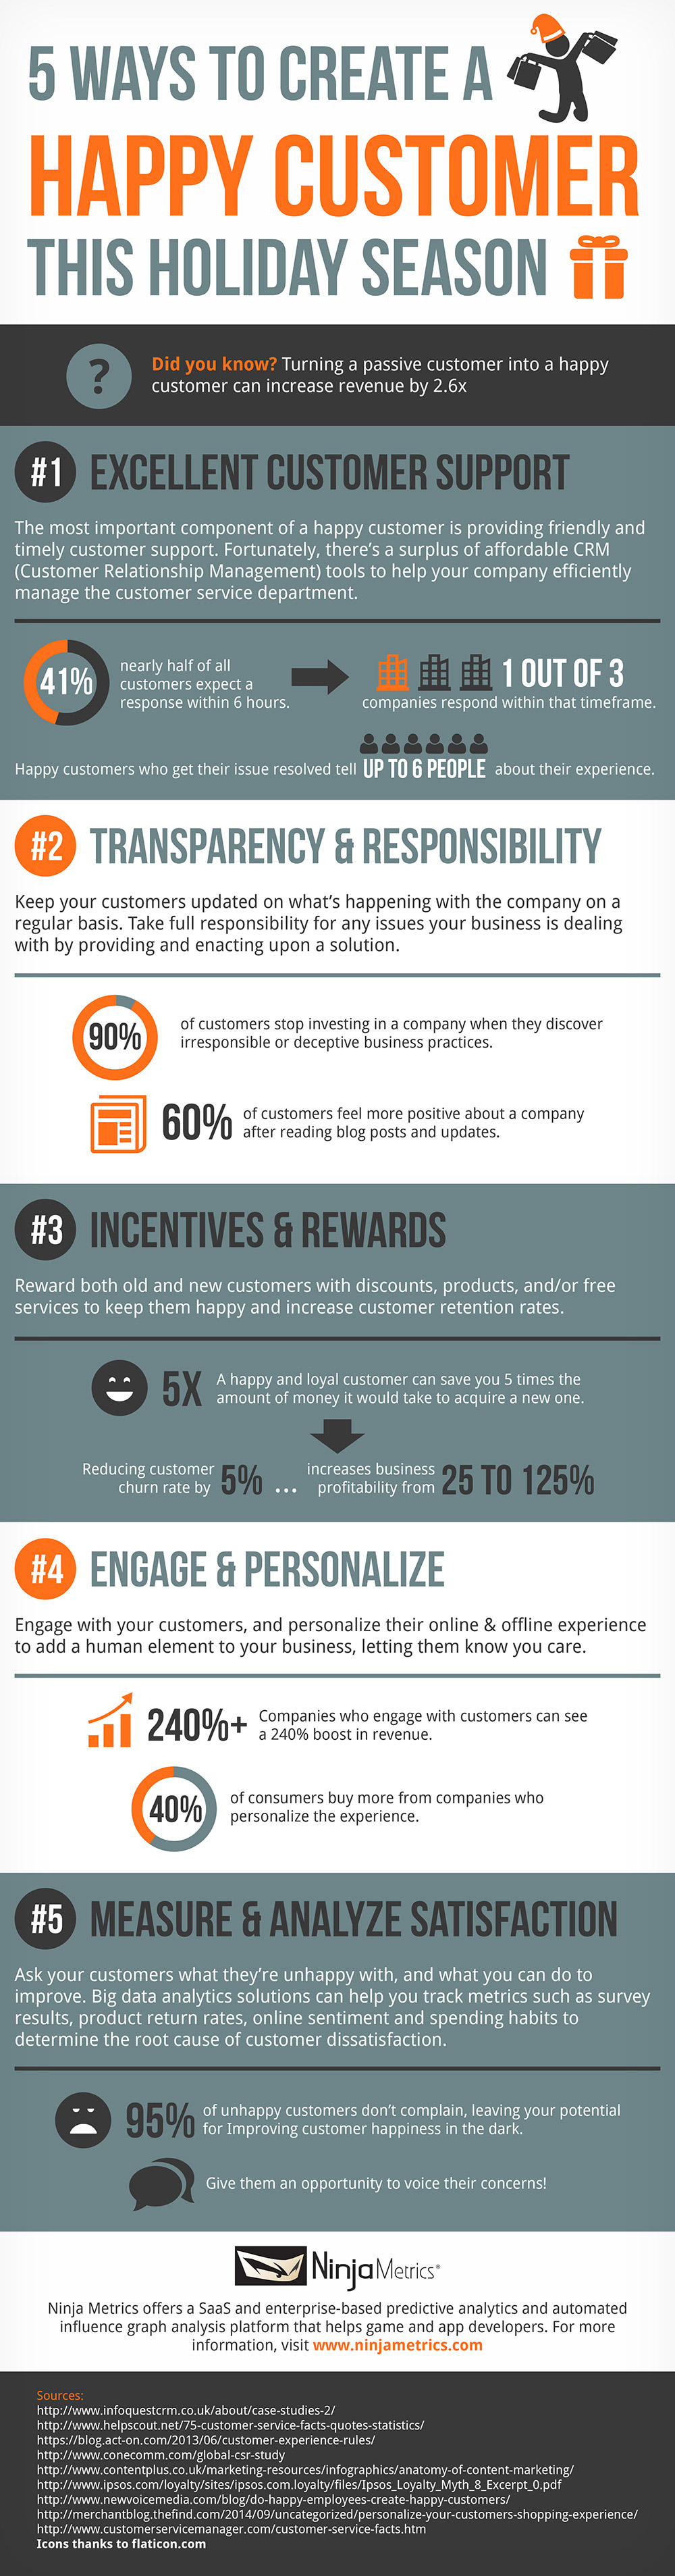 1416858775-want-happy-customers-do-5-things-infographic